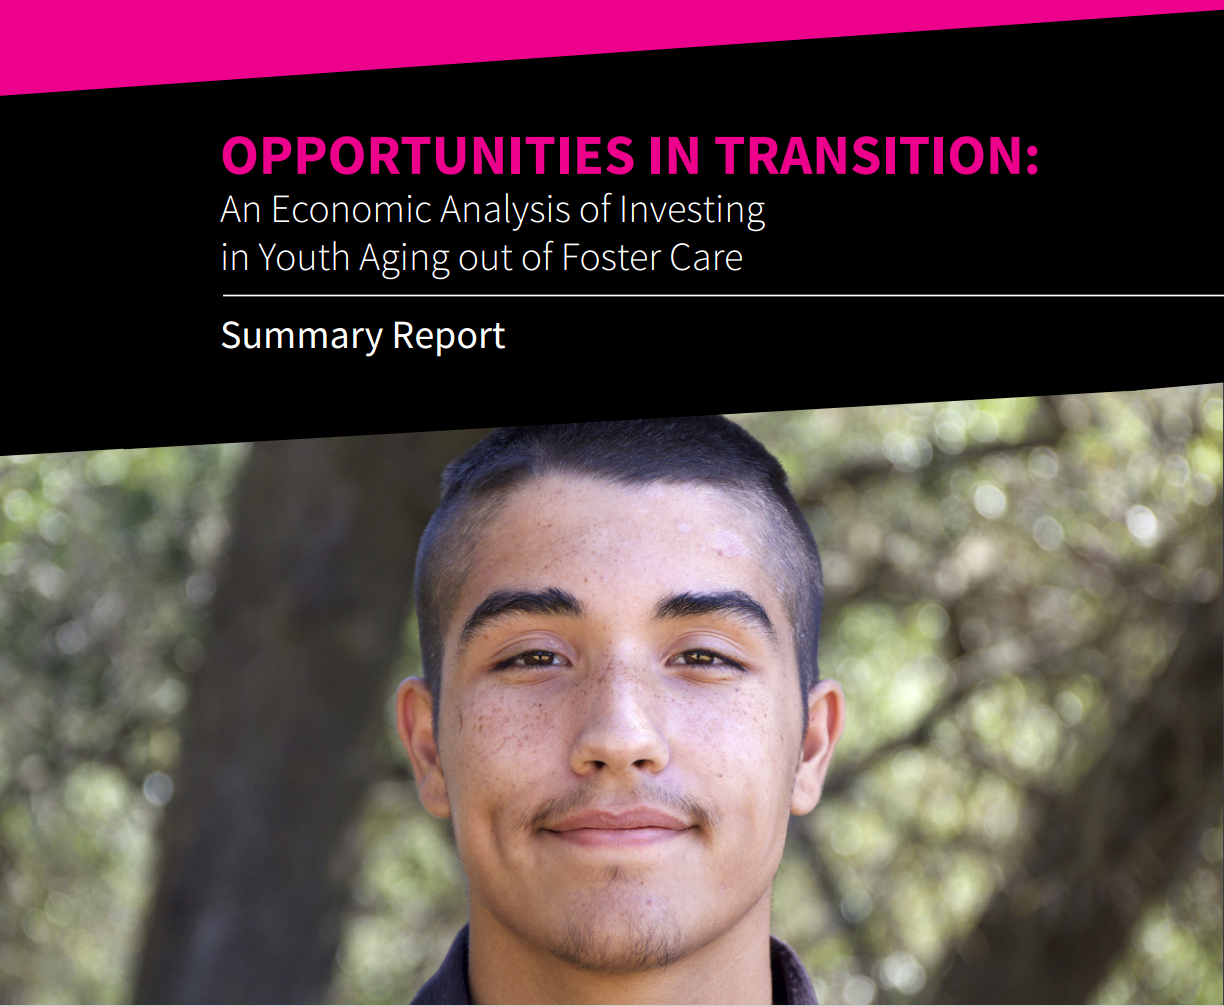 Fostering Change Opportunities in Transition Report Cover